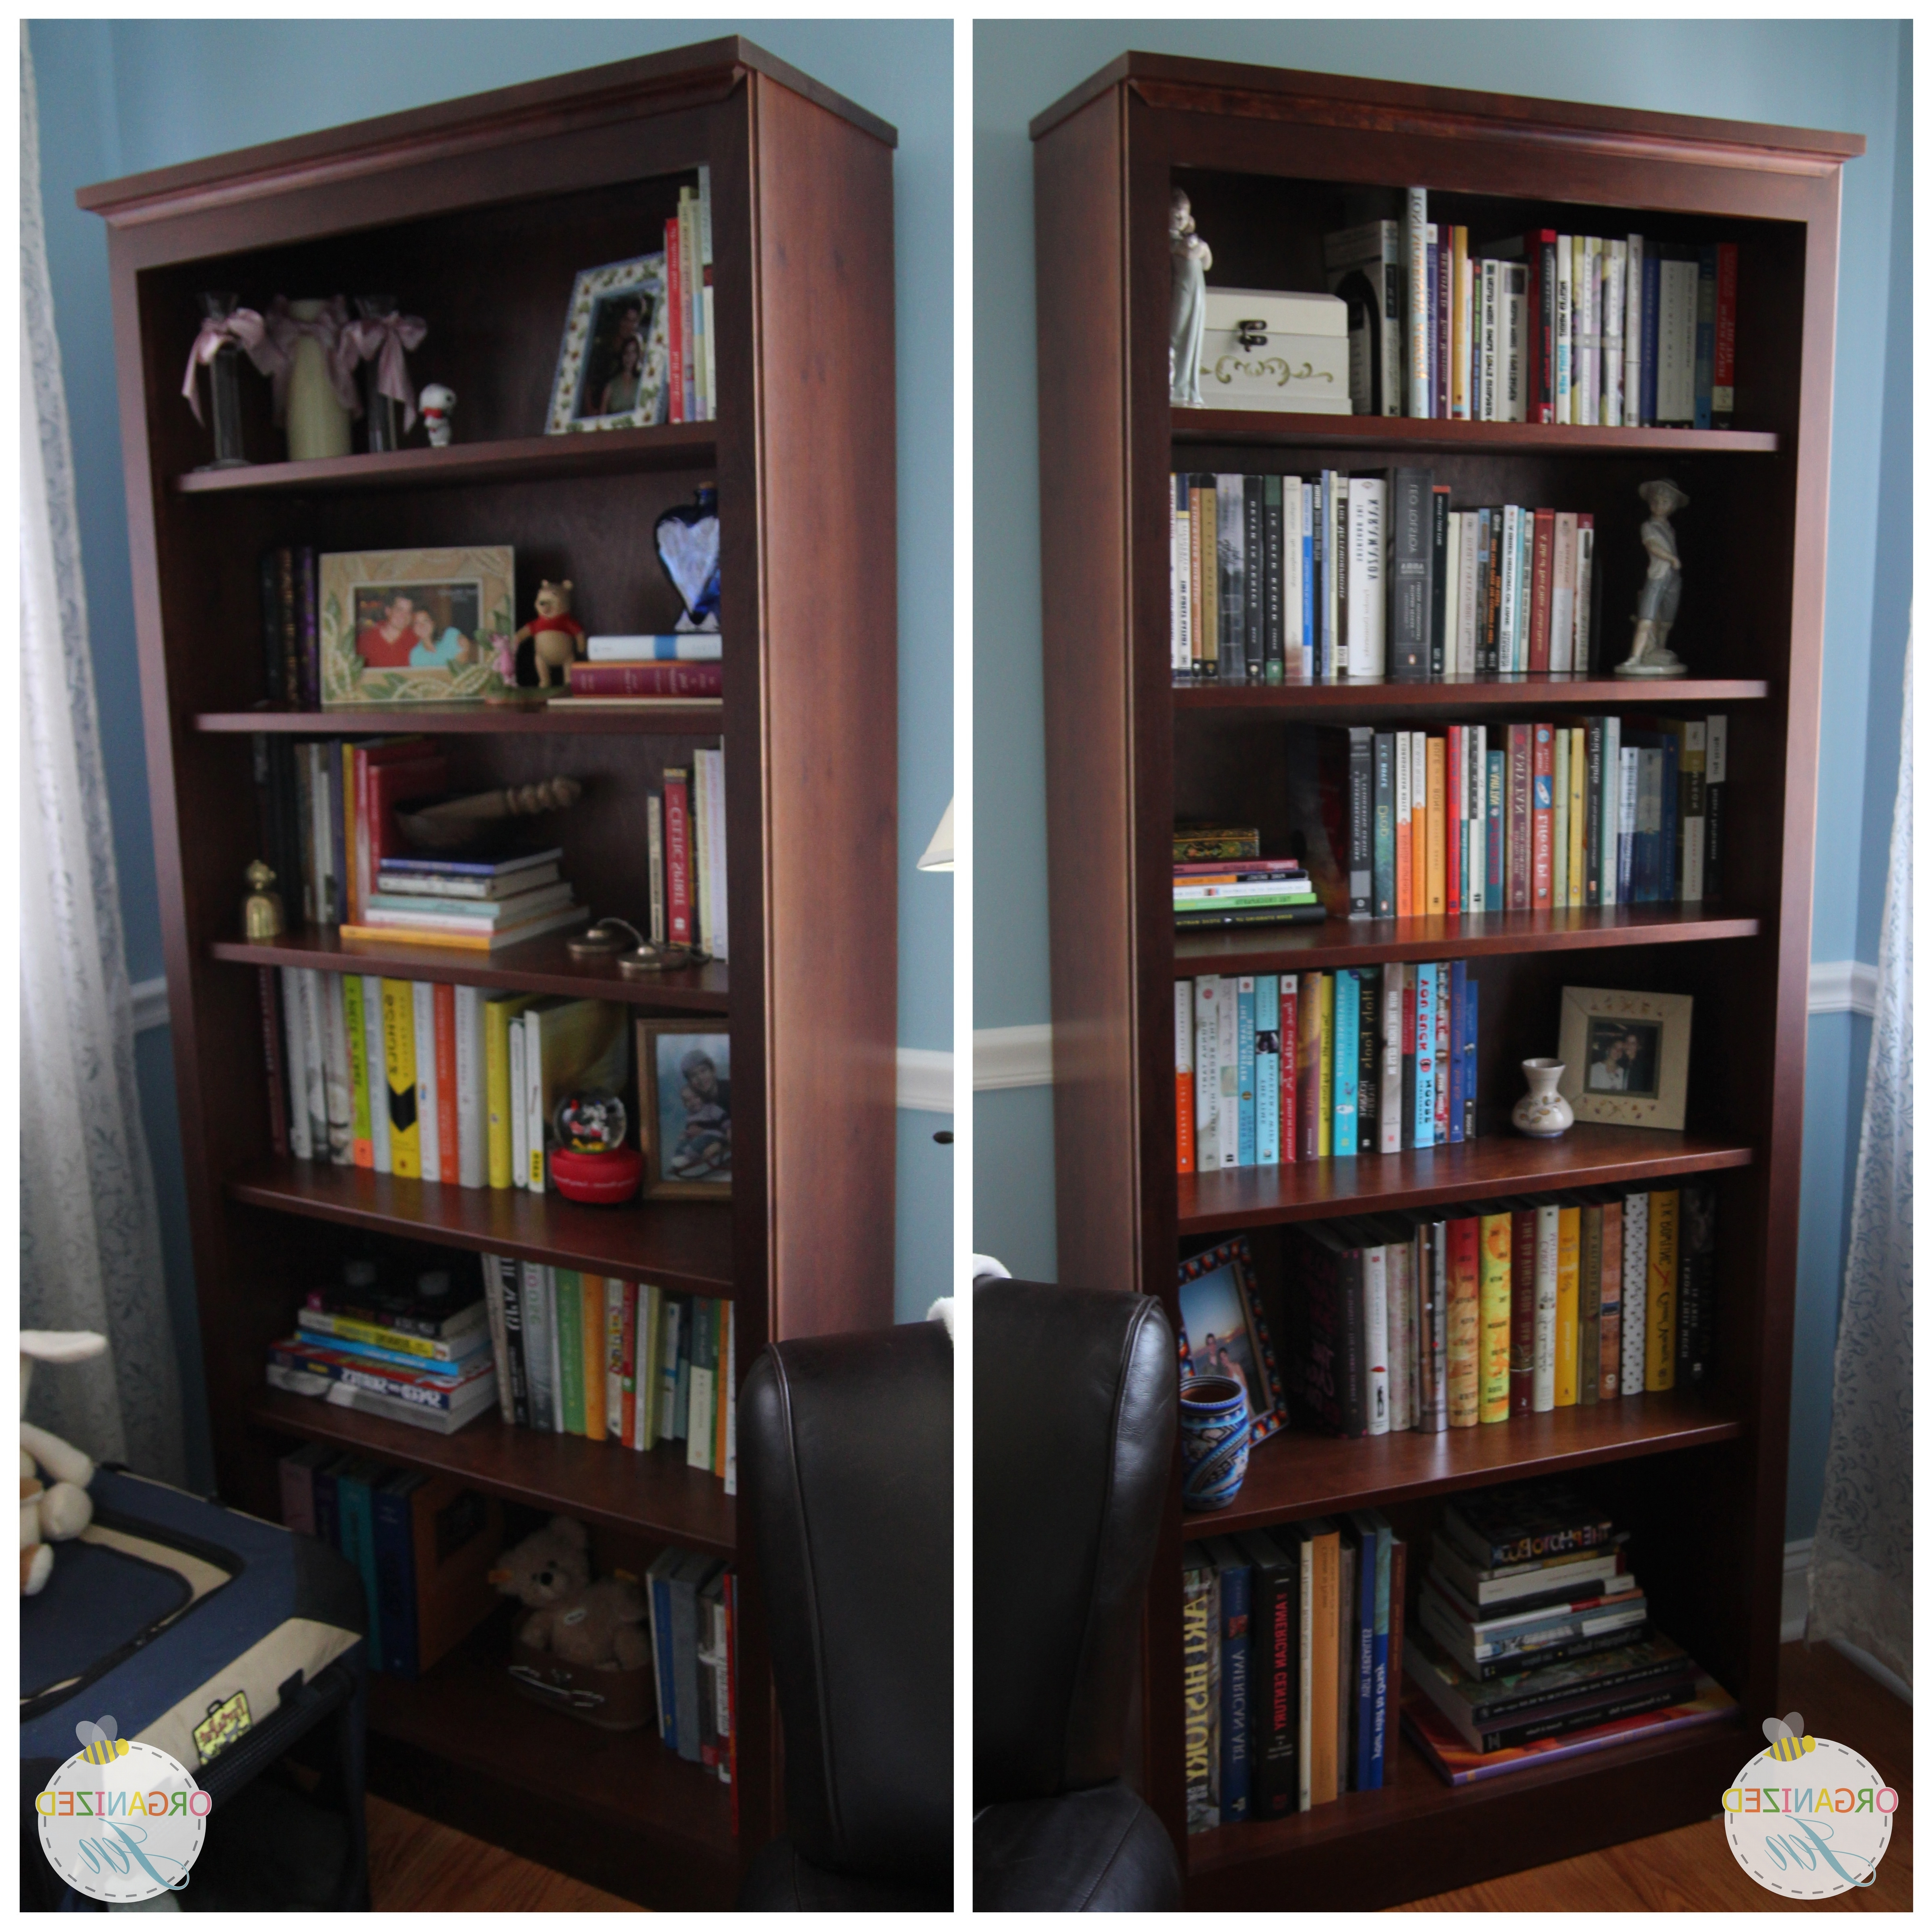 Bookshelf Tour & Organization – Pretty Neat Living For Recent Crate And Barrel Bookcases (View 7 of 15)